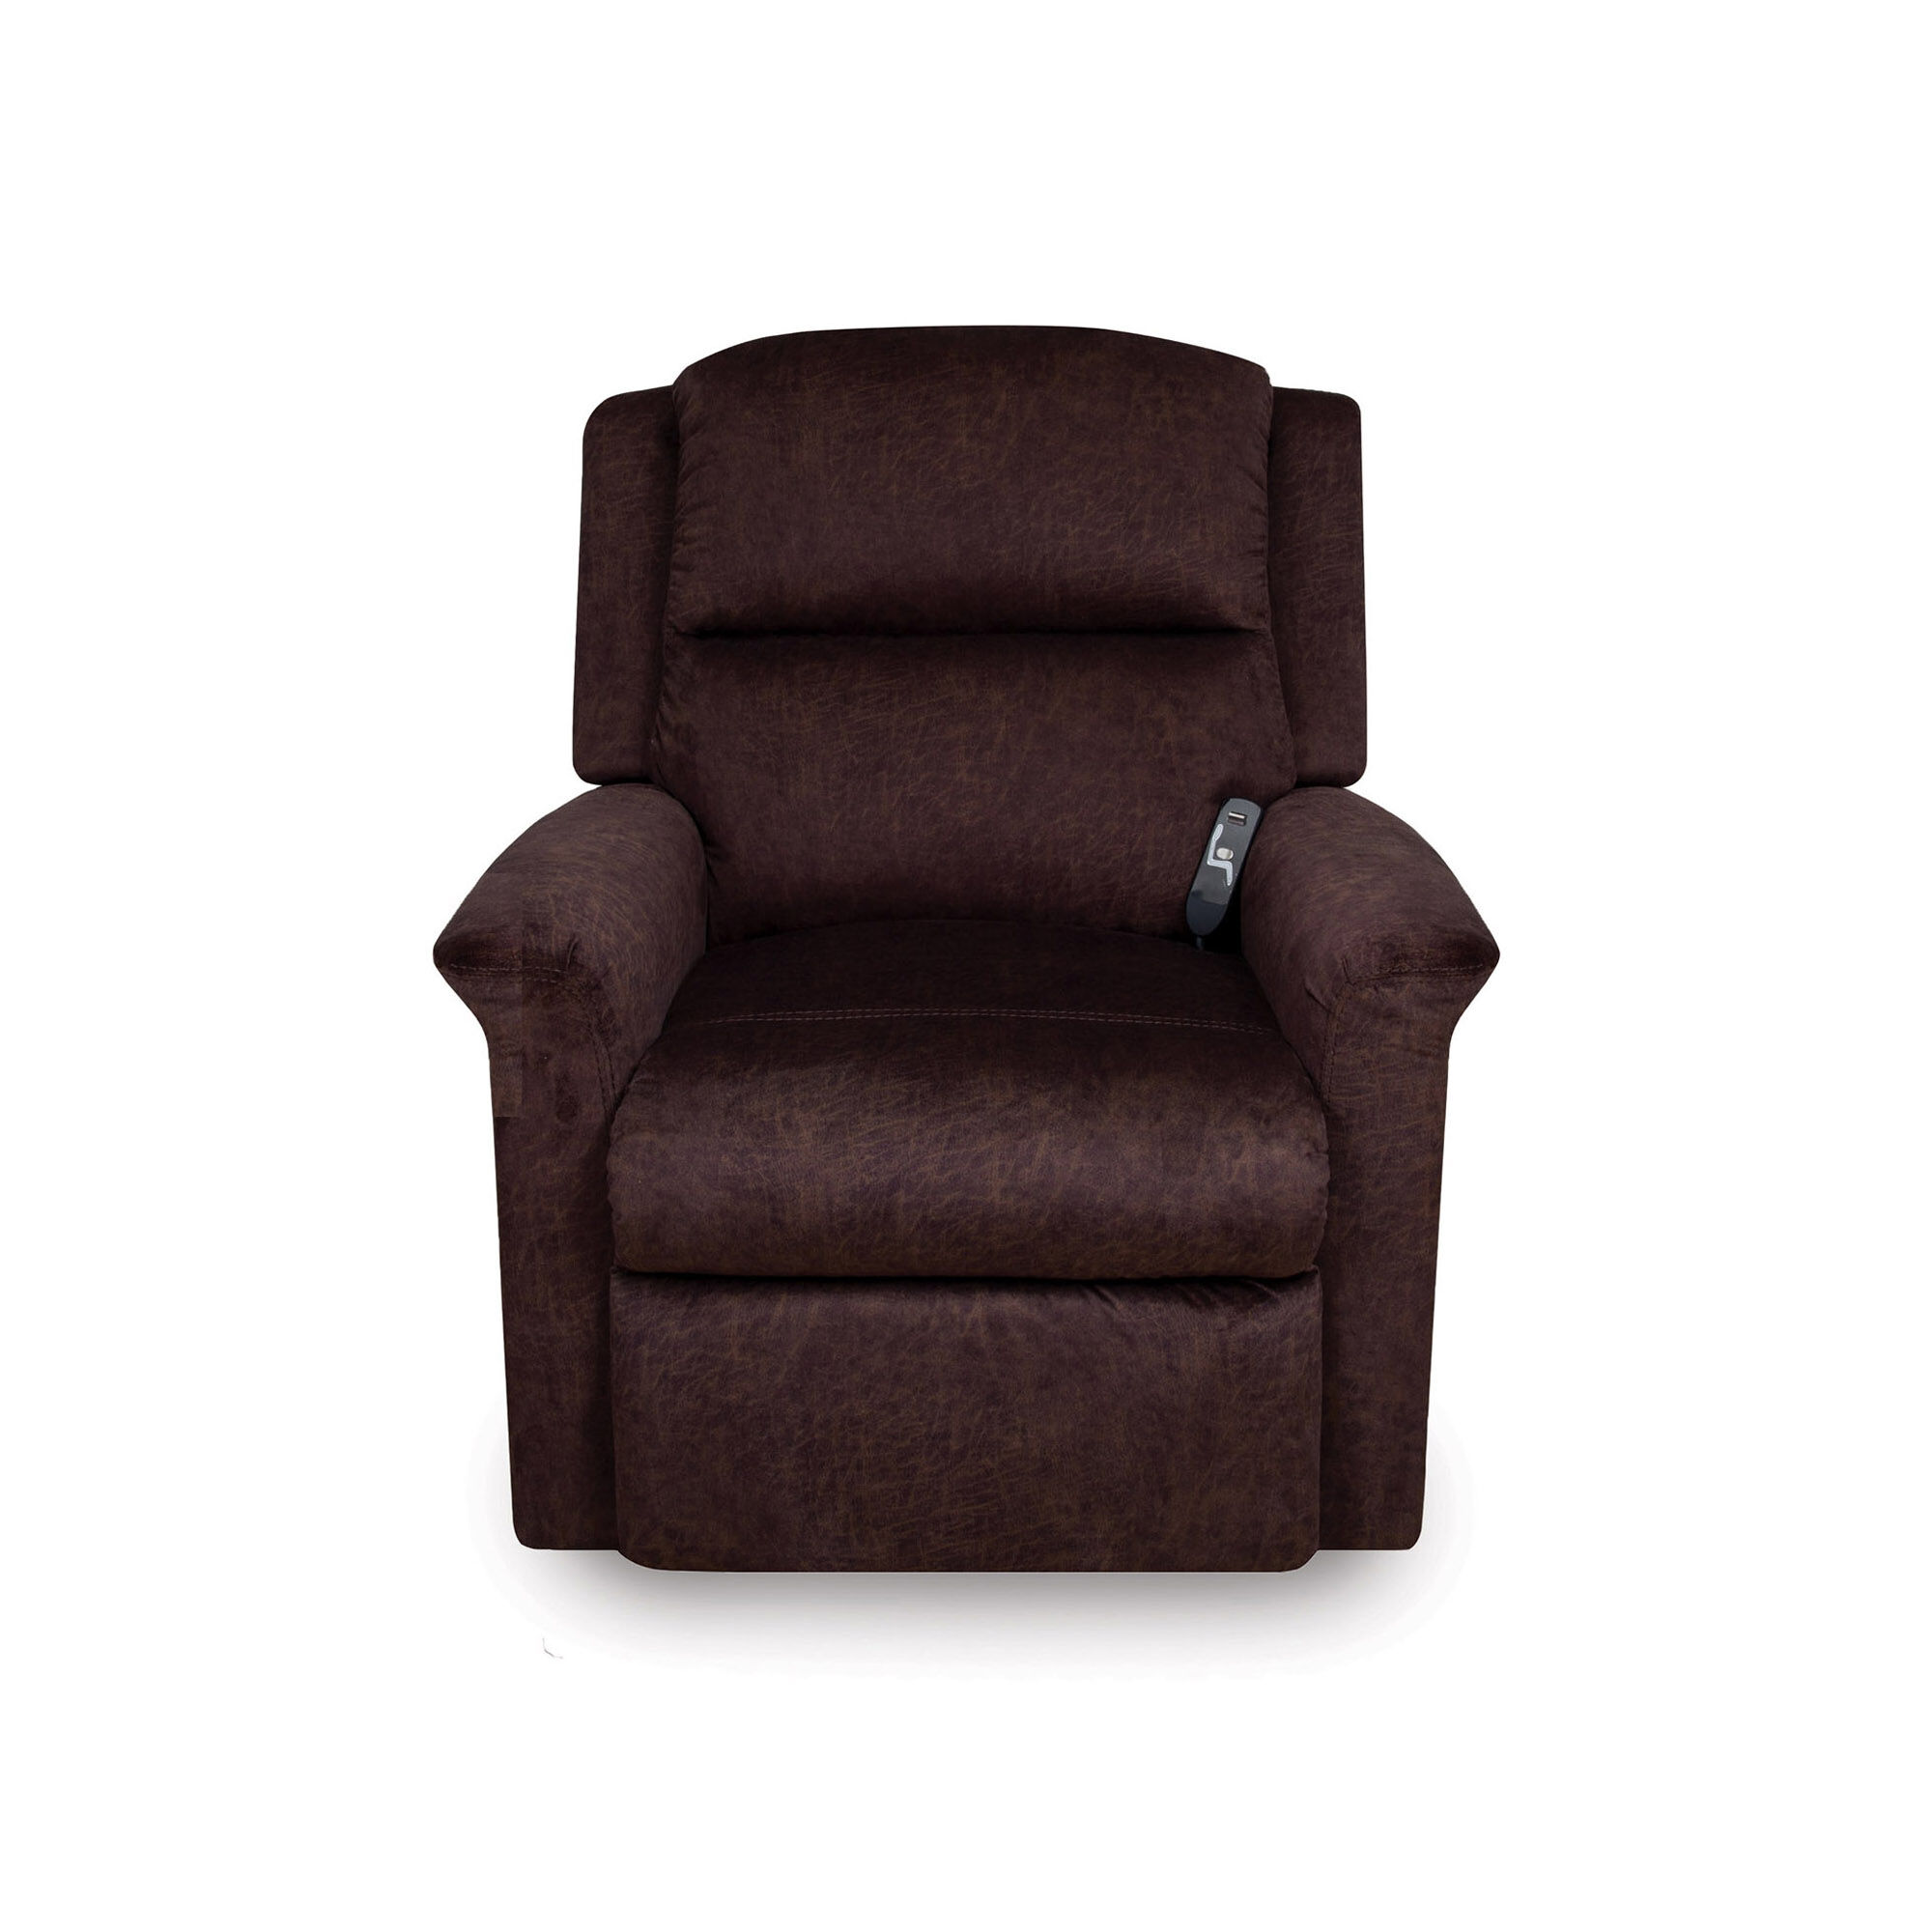 Bariatric Lift Chair Power Lift Recliner